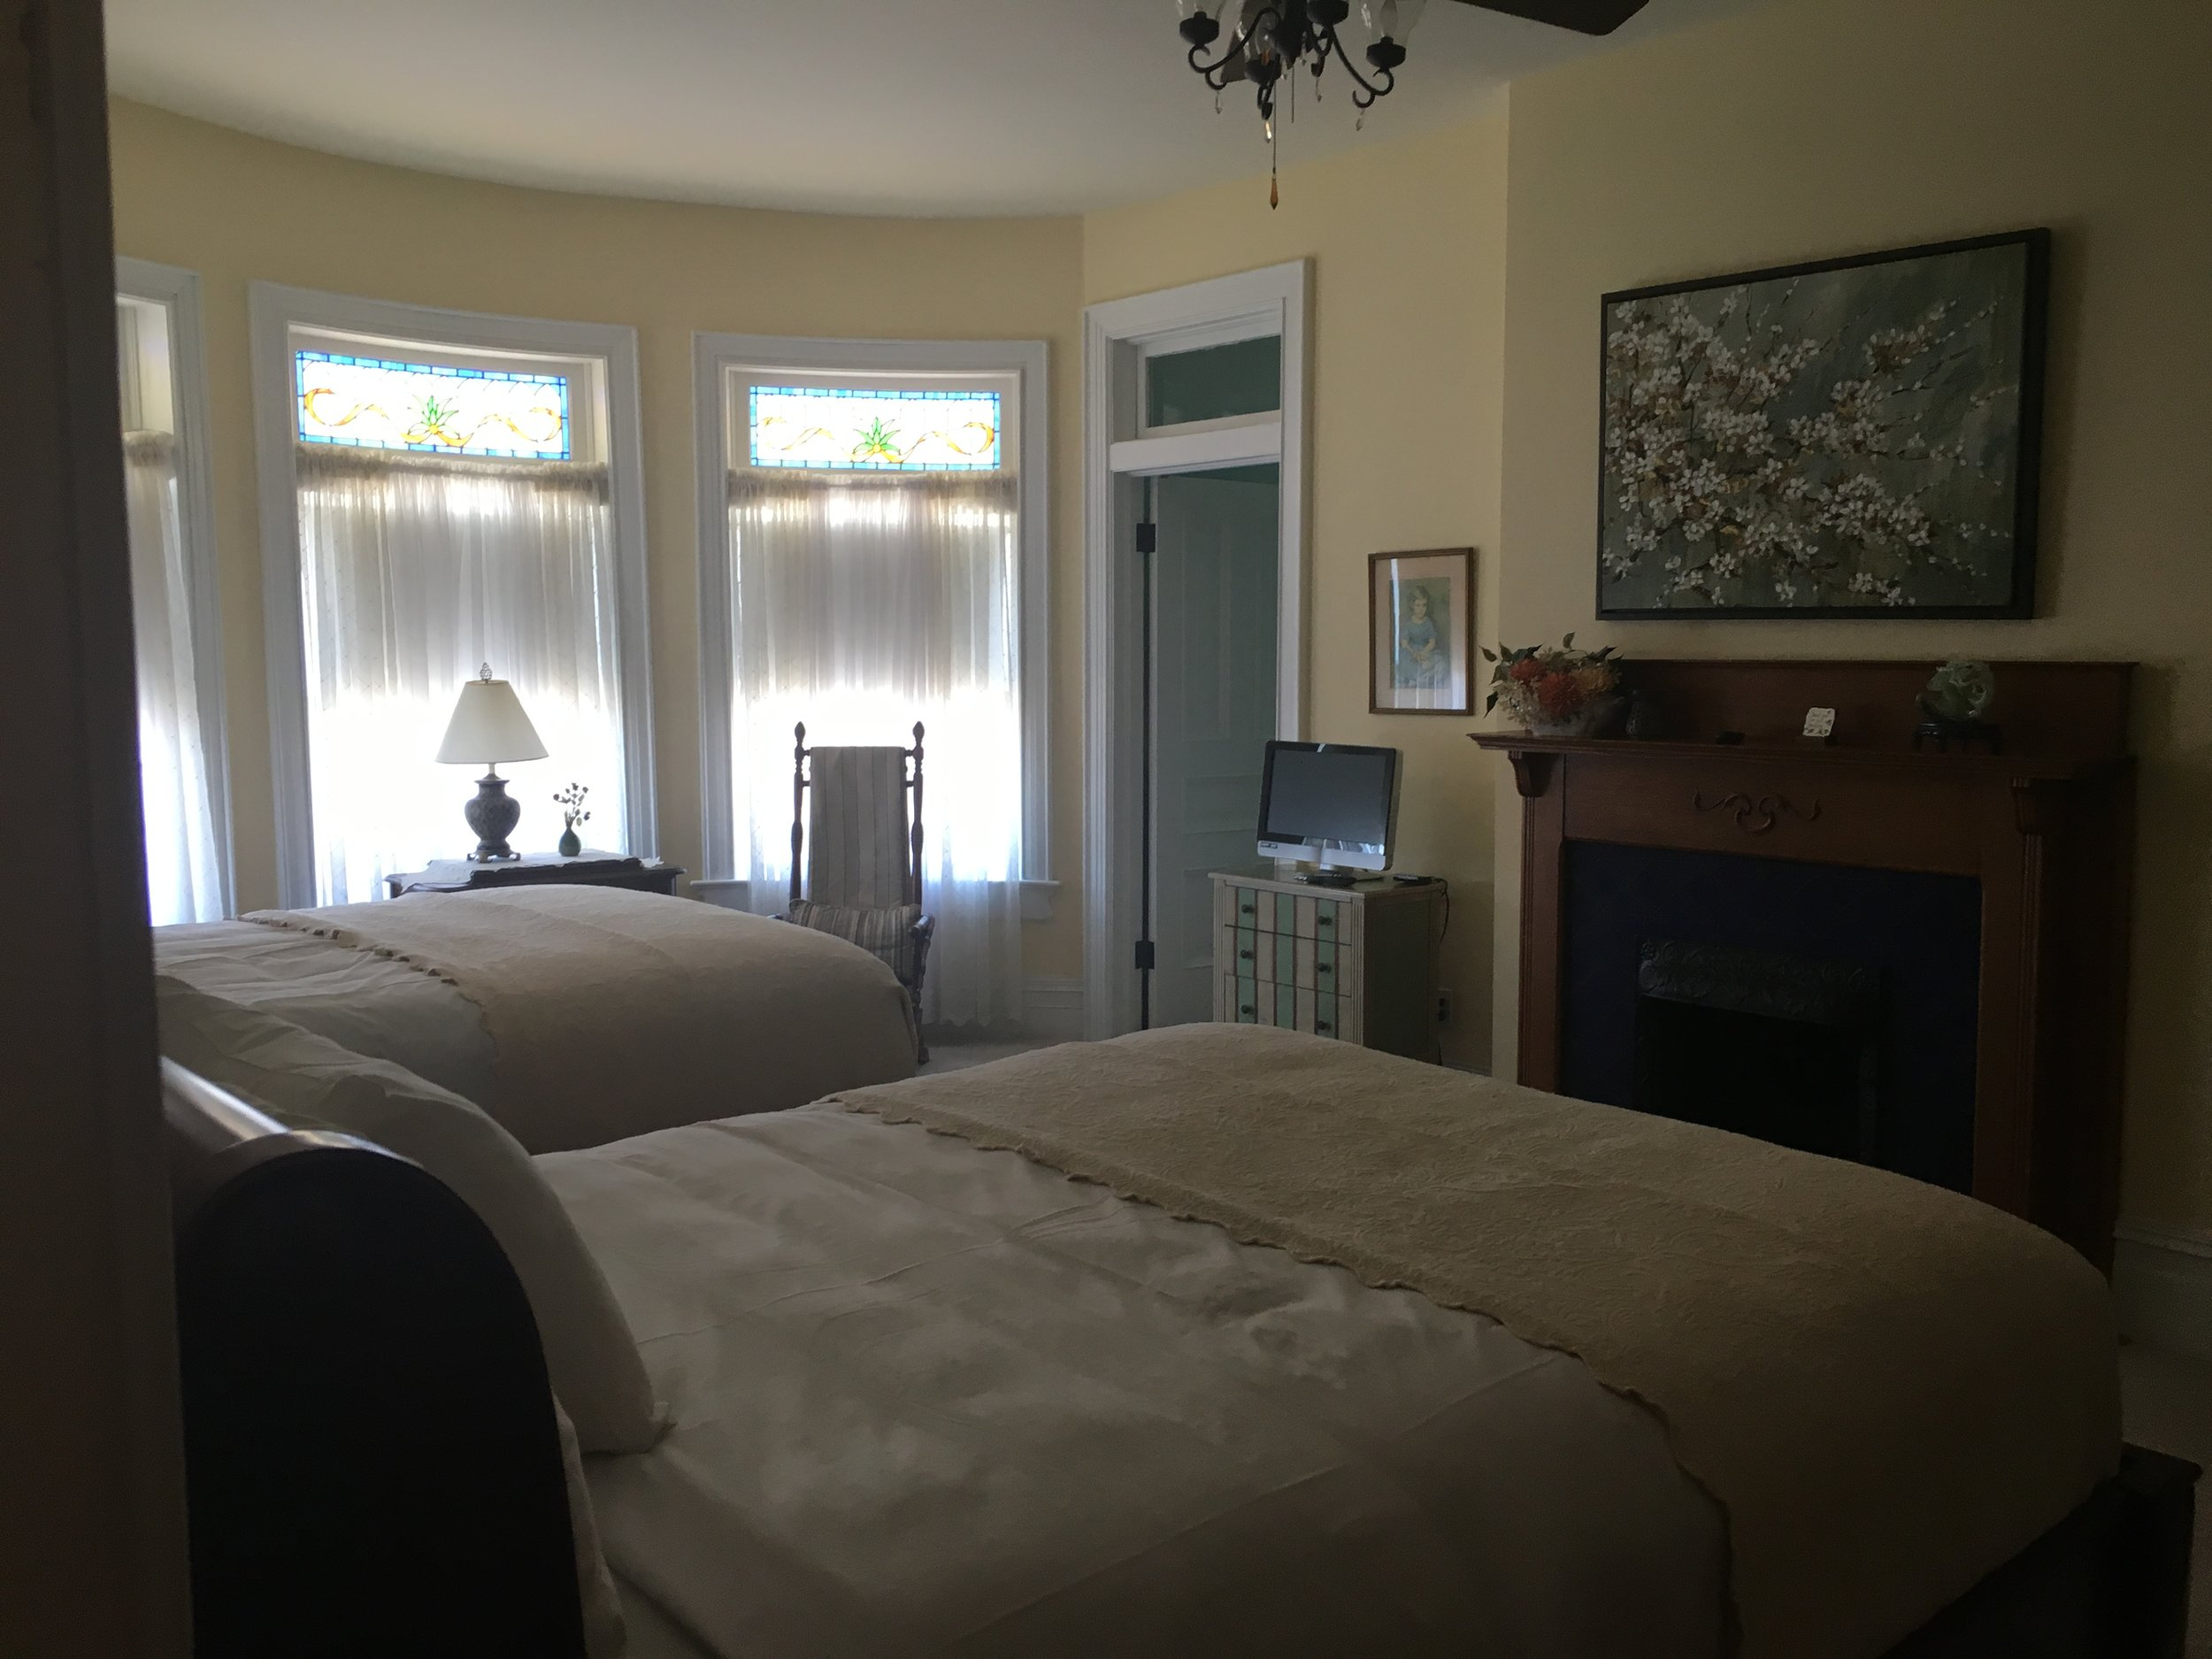 Gabrielle's Room - Queen Luxury Double -- 2 Queen beds, en suite bath, jacuzzi tub, gas fireplace